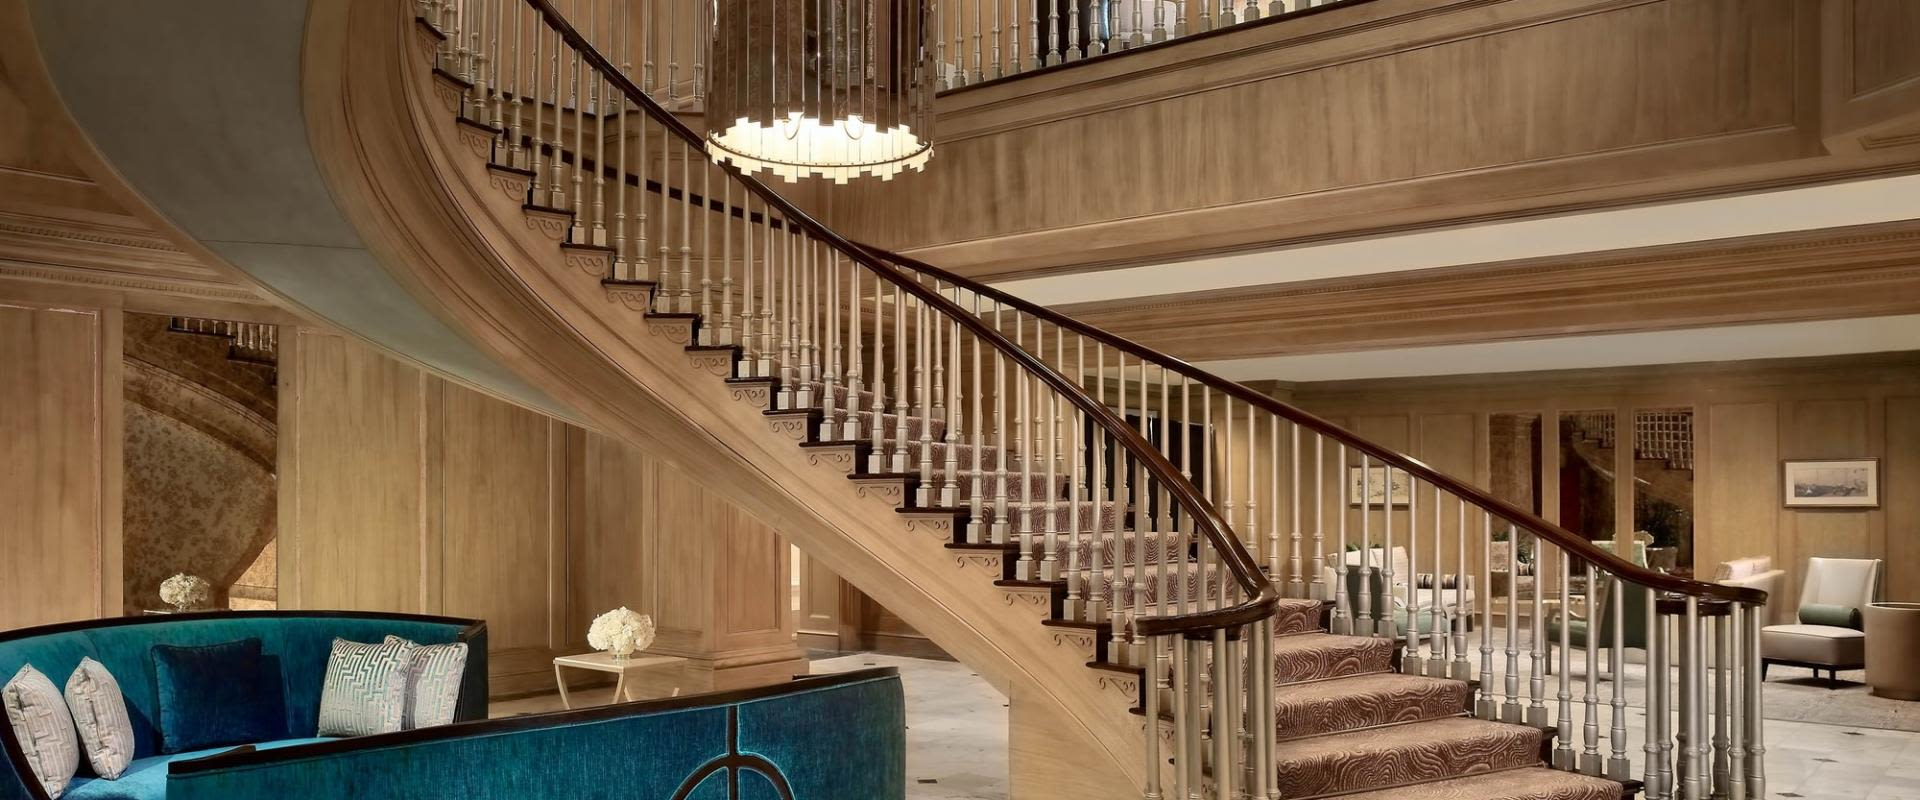 Royal Sonesta Harbor Court Baltimore Staircase